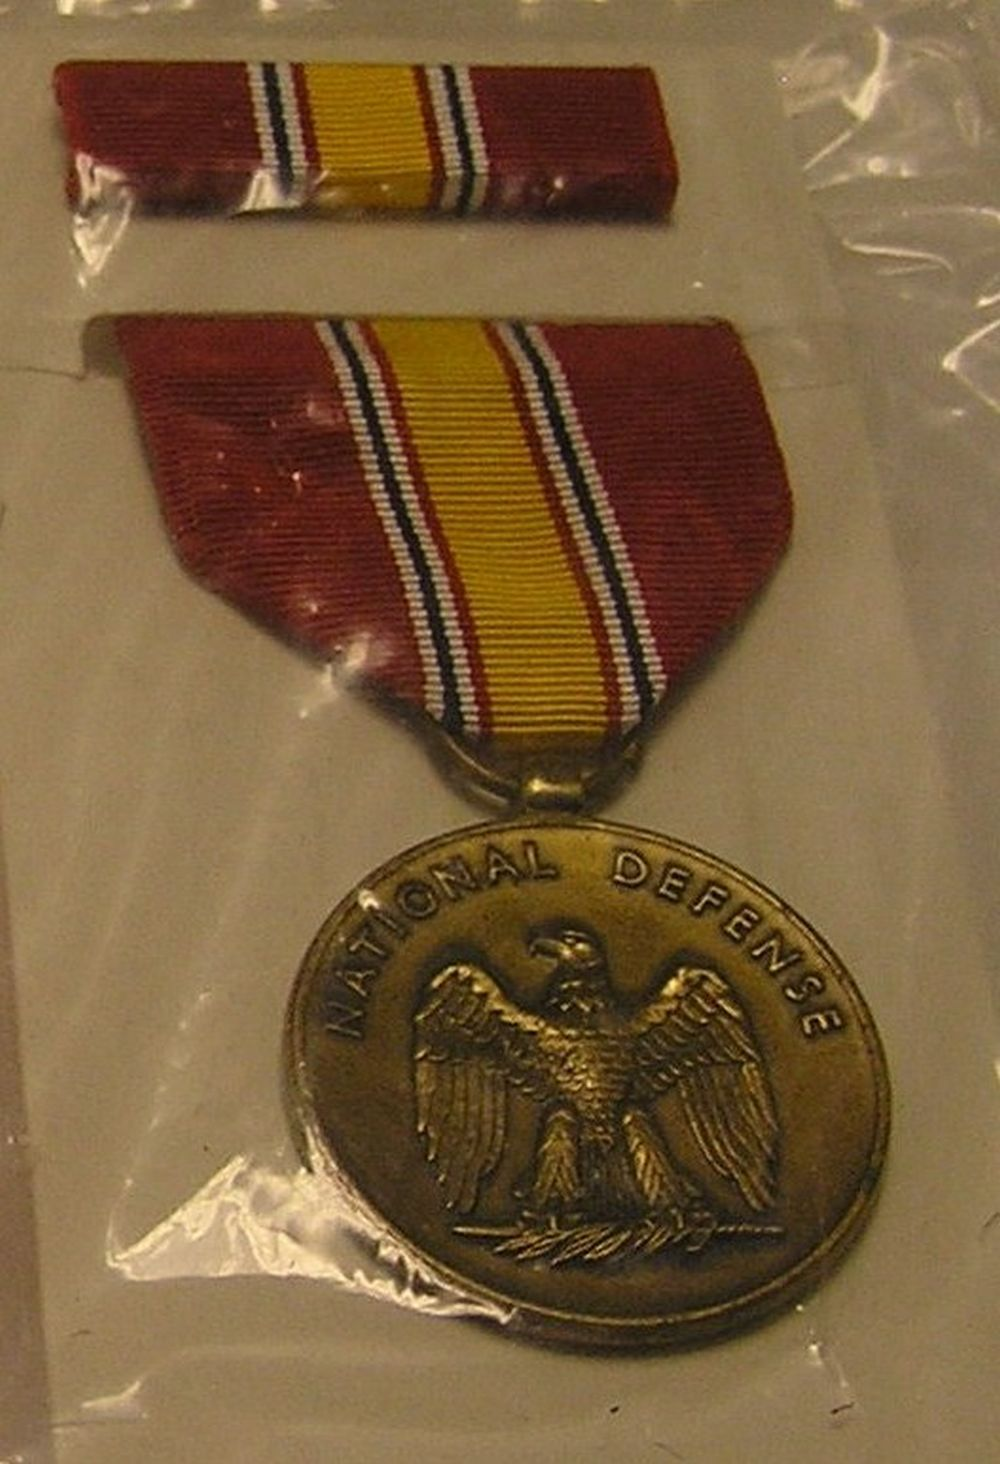 MILITARY DEFENSE MEDAL, RIBBON AND BAR SET